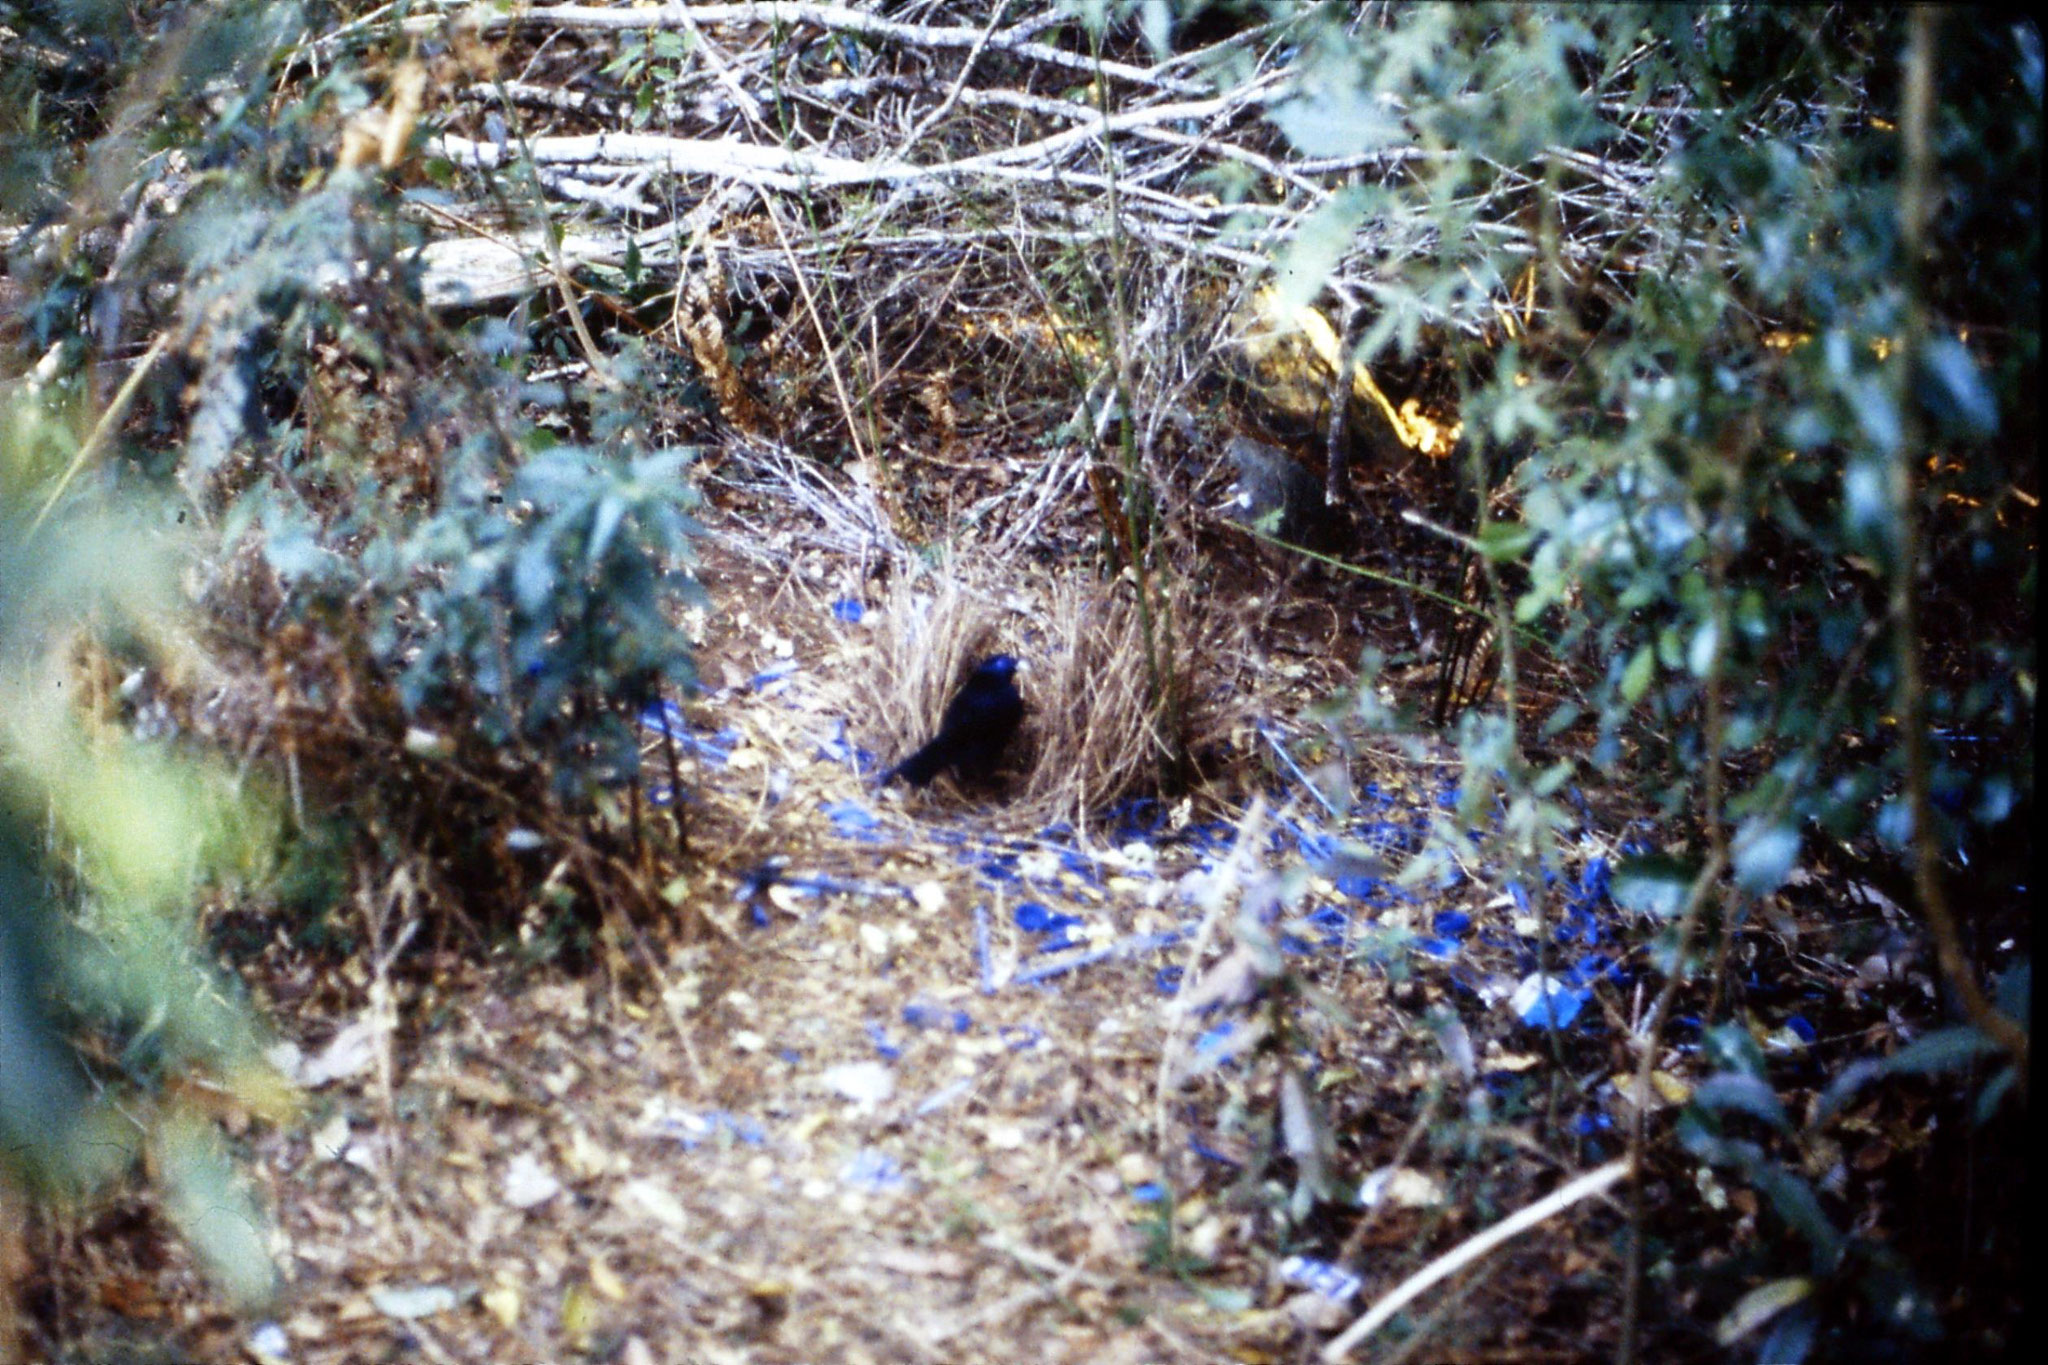 13/10/1990: 19: Mt Lamington, satin bower bird